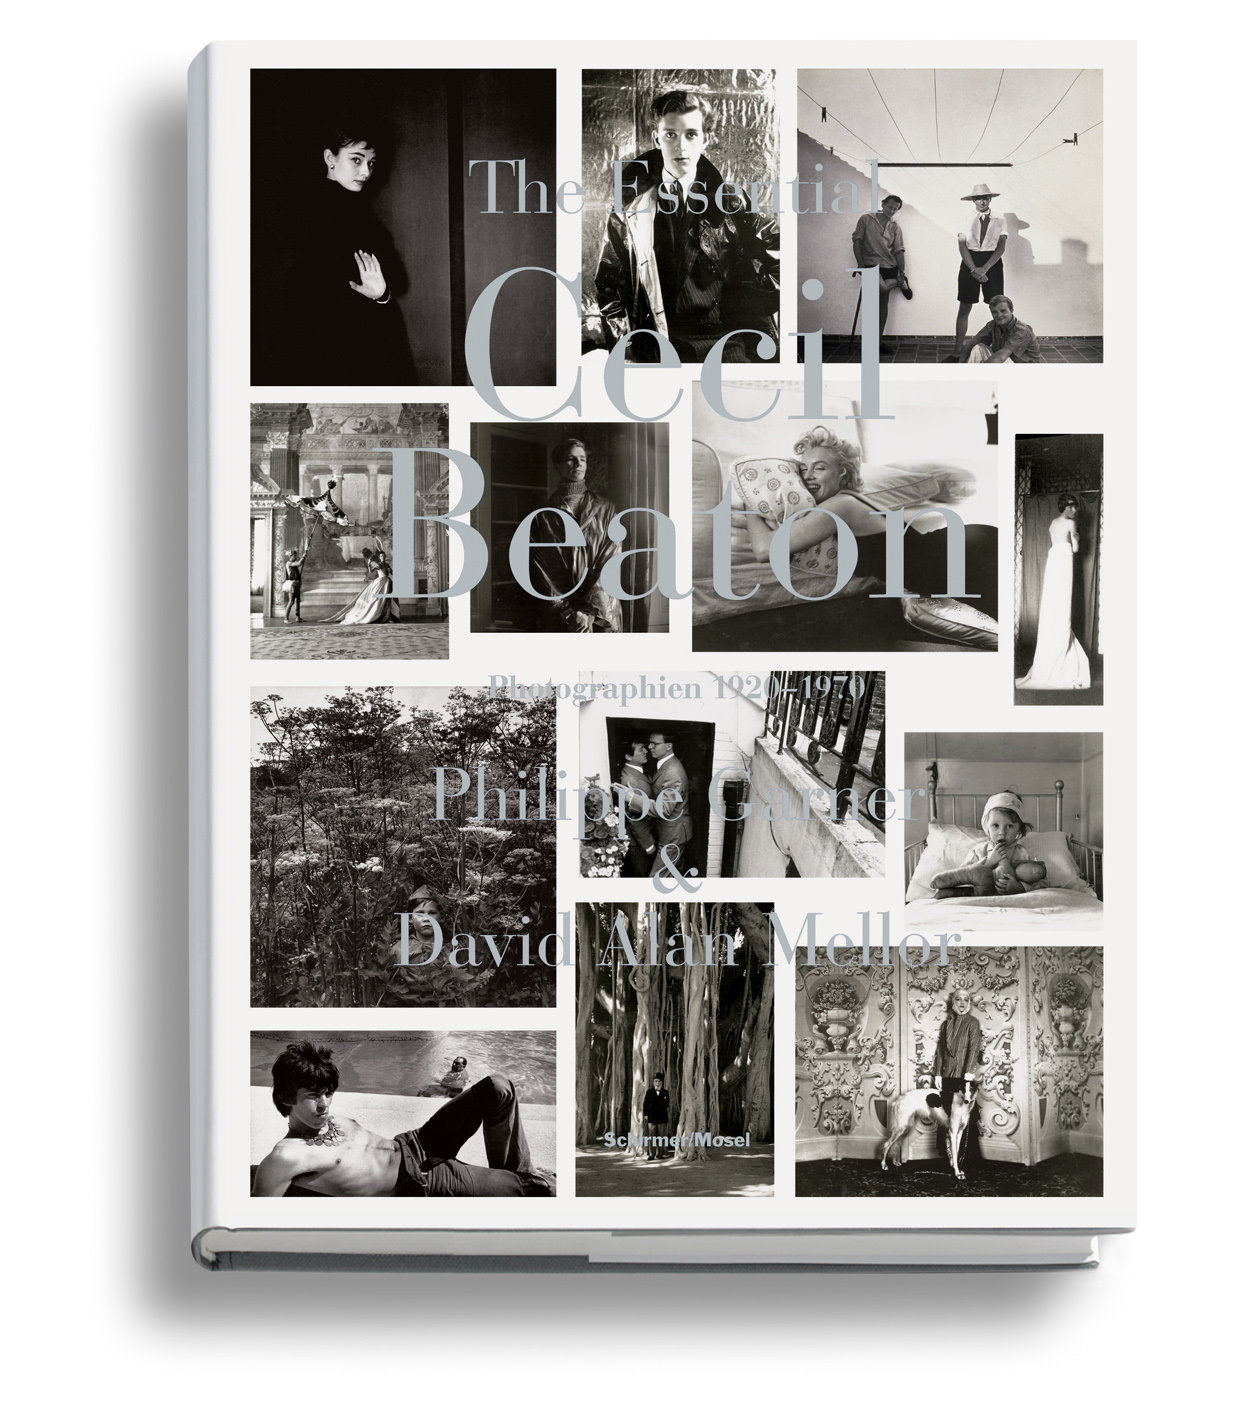 The Essential Cecil Beaton: Photographs 1920-1970 by Philippe Garner and David Alan Mellor